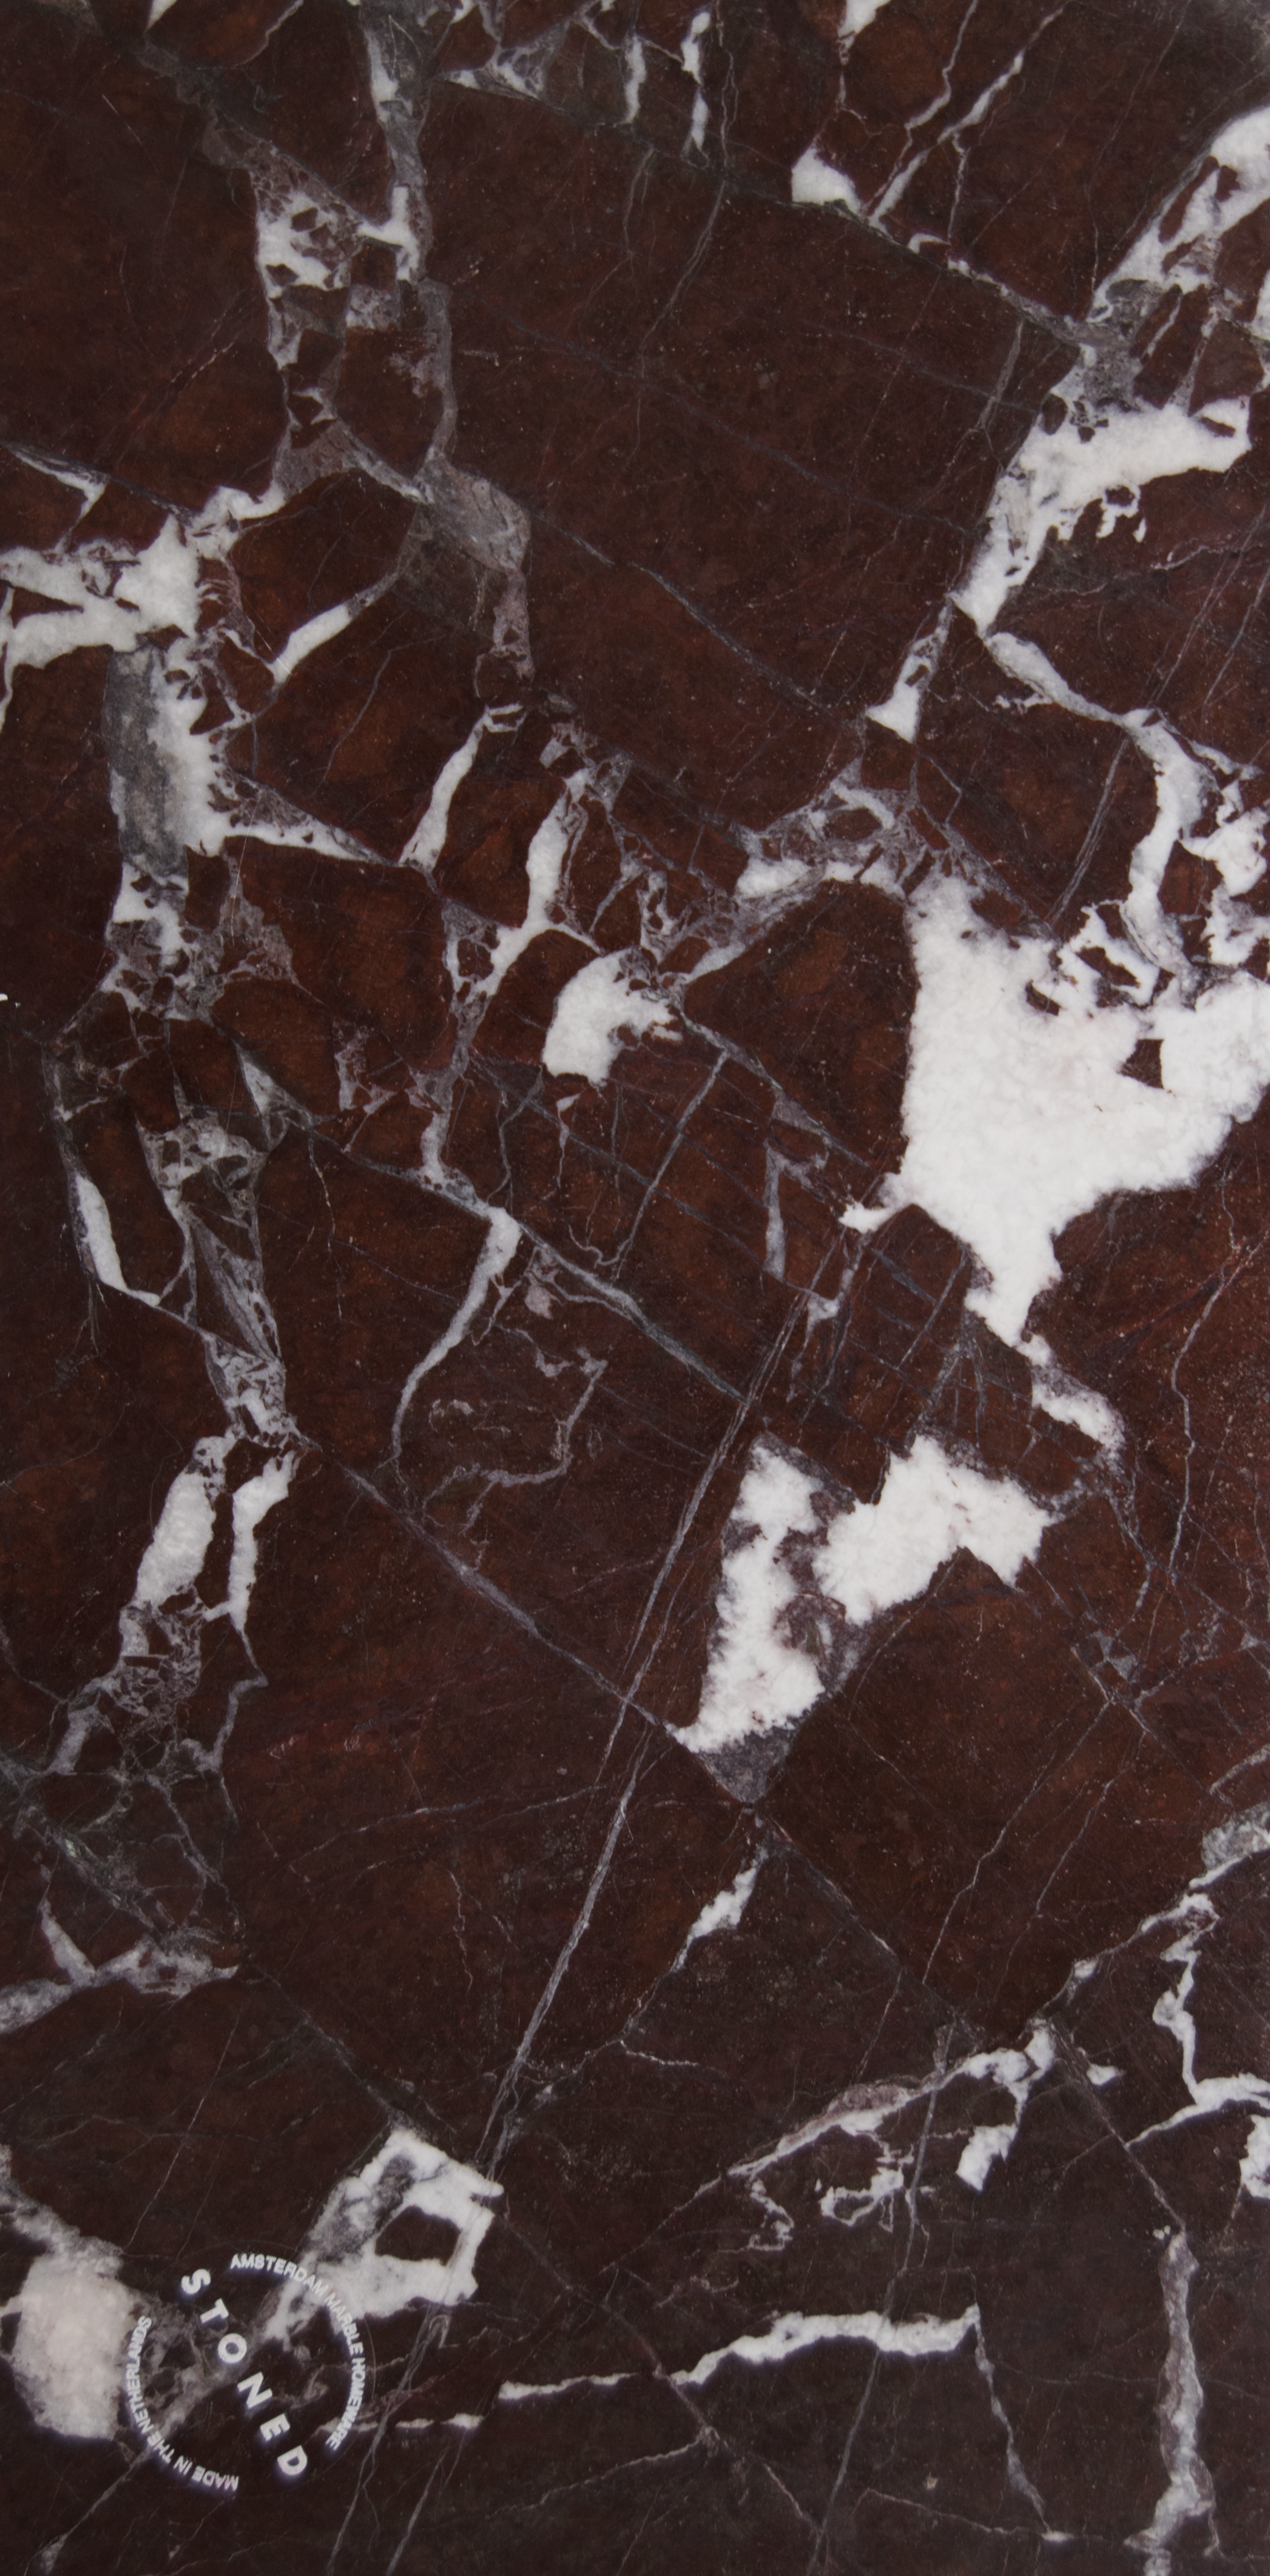 Stoned Free Burgundy Alexis Marble Wallpaper Background Marble Wallpaper Wallpaper Backgrounds Marble Background